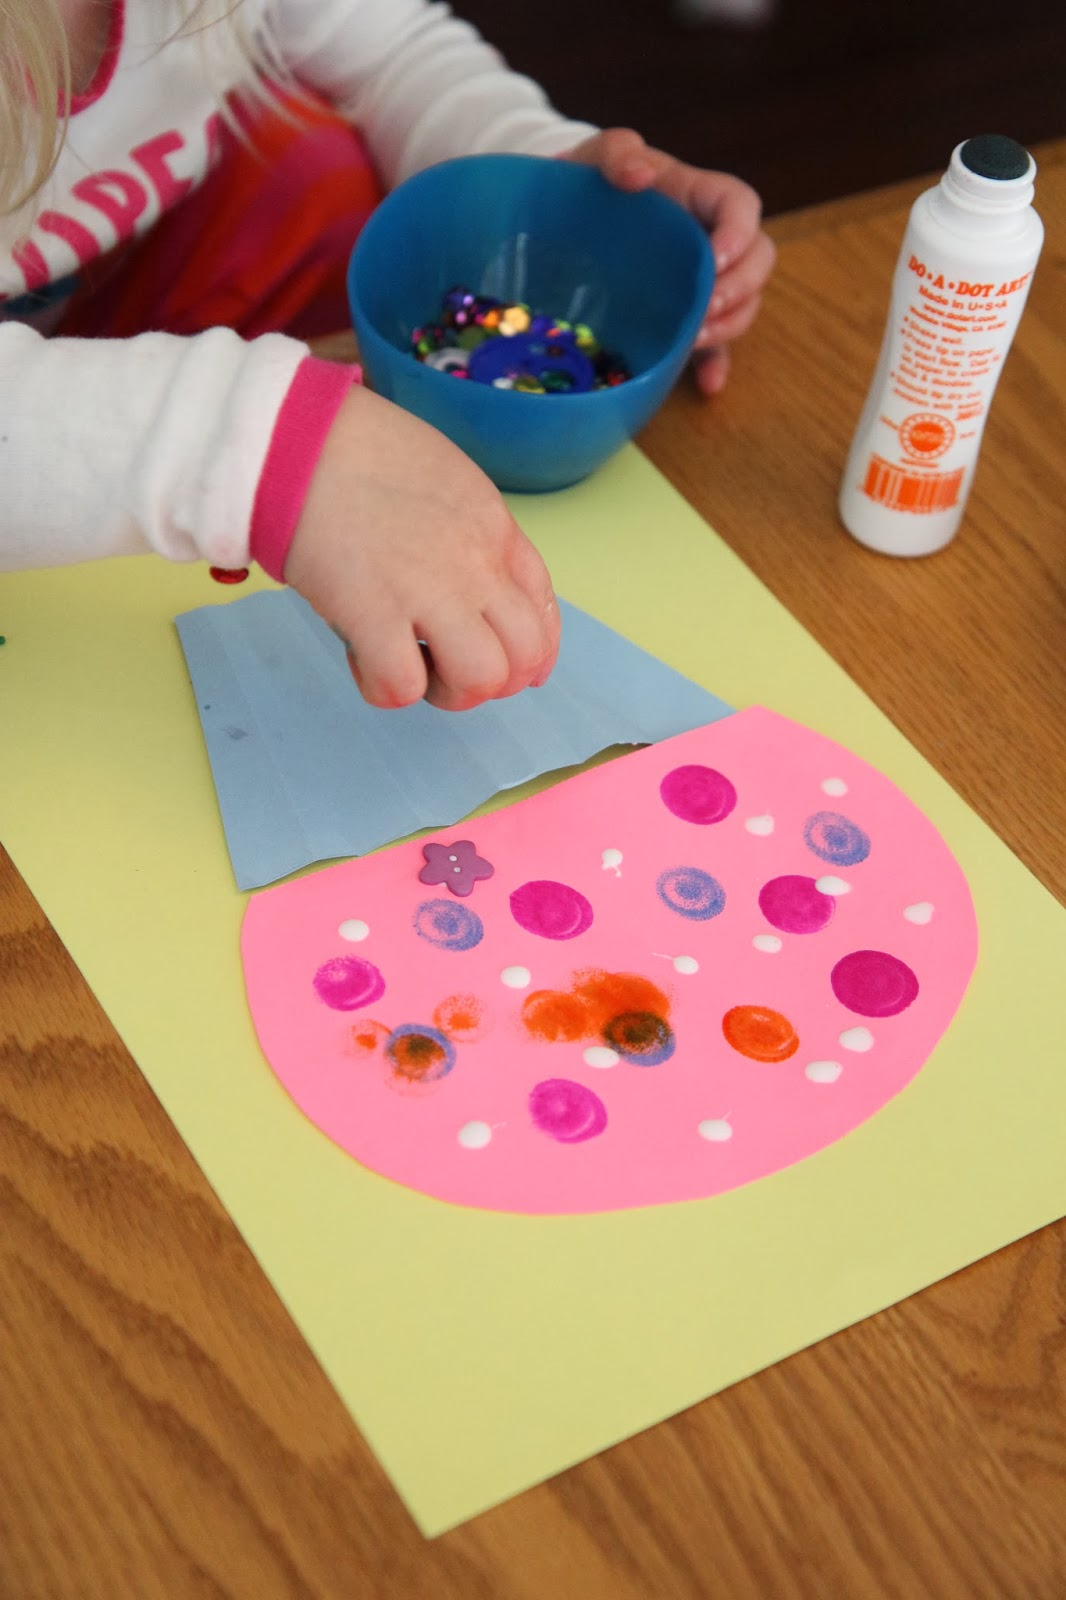 Toddler Approved!: Cupcake Craft for Kids {Laura Numeroff ...